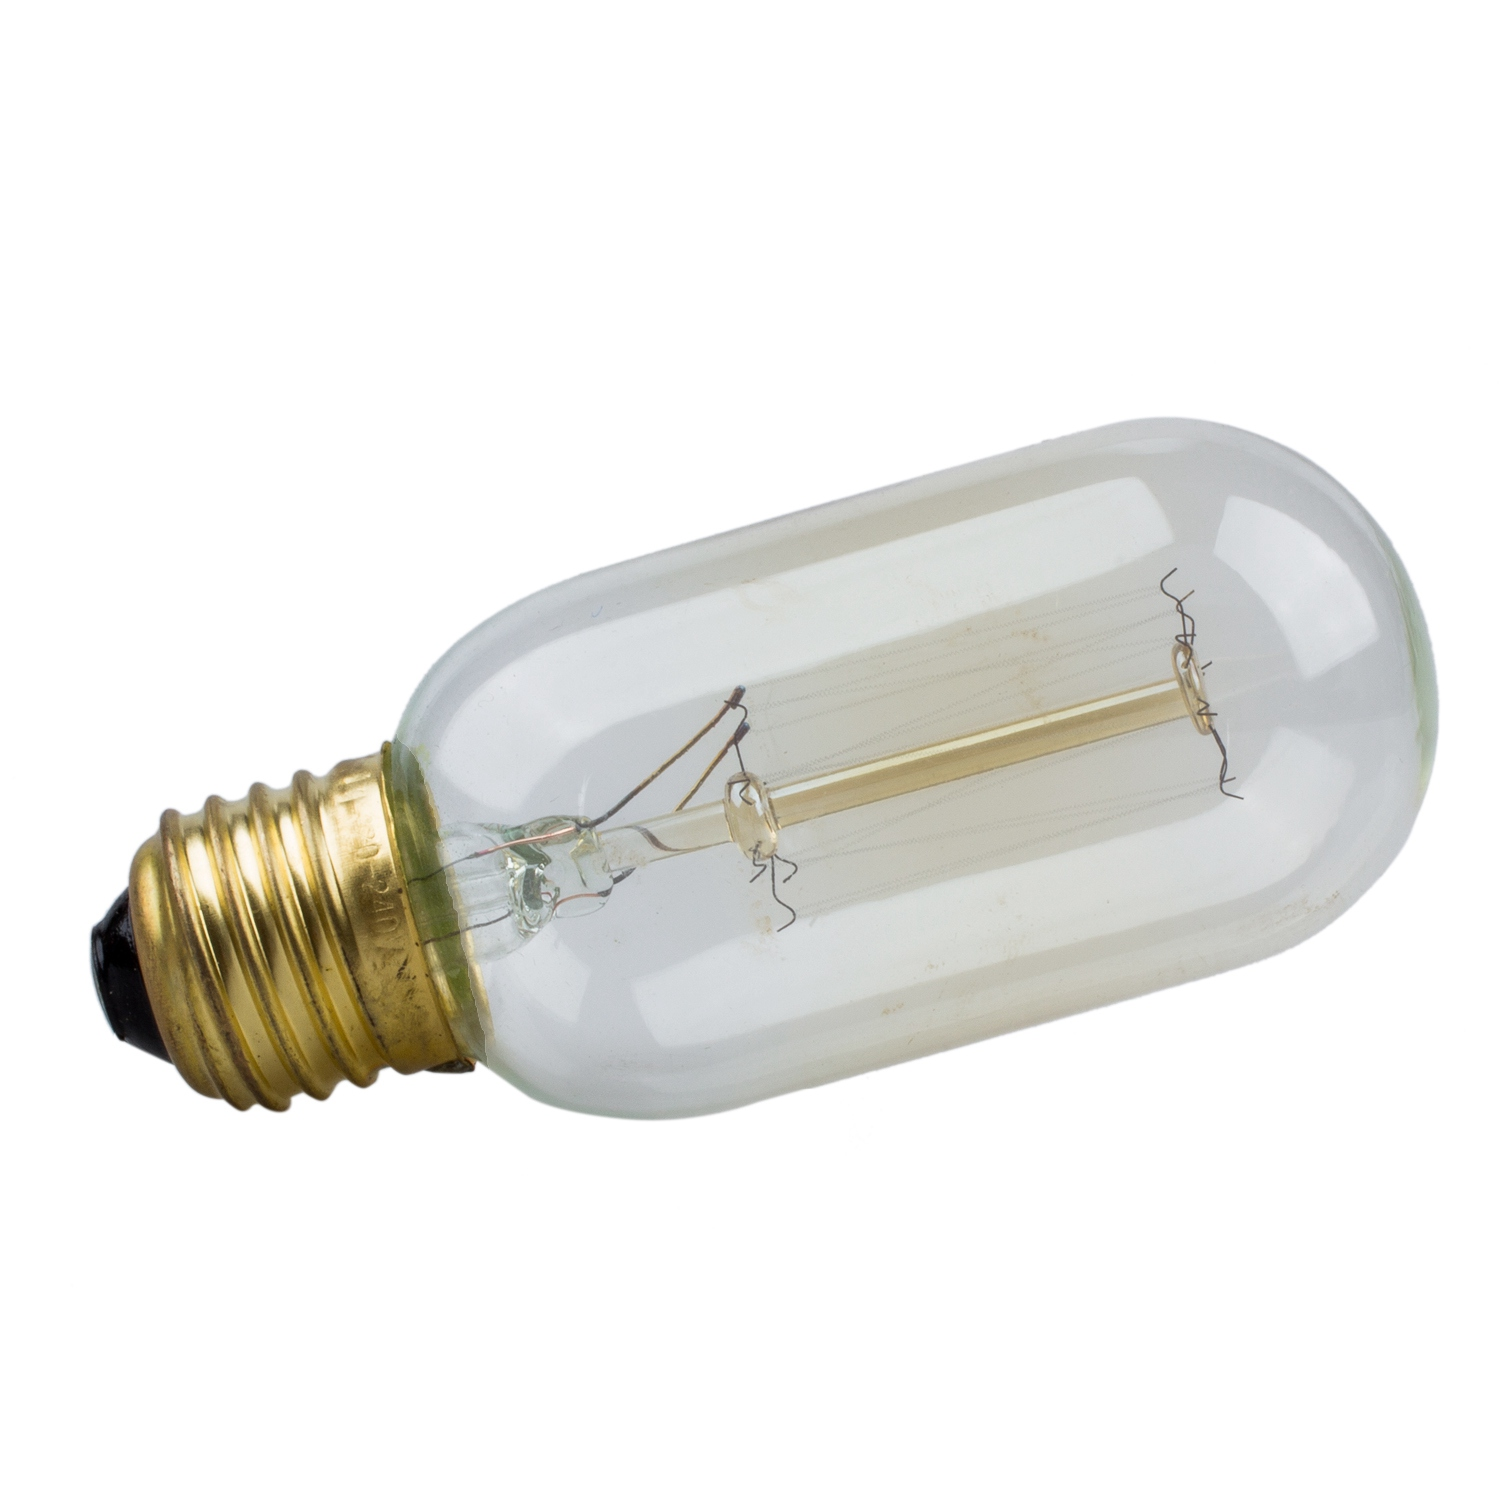 E27 40W Vintage Retro Filament Tungsten Light Bulb T45 J5D5 W3W3; Picture 2  Of 5 ...